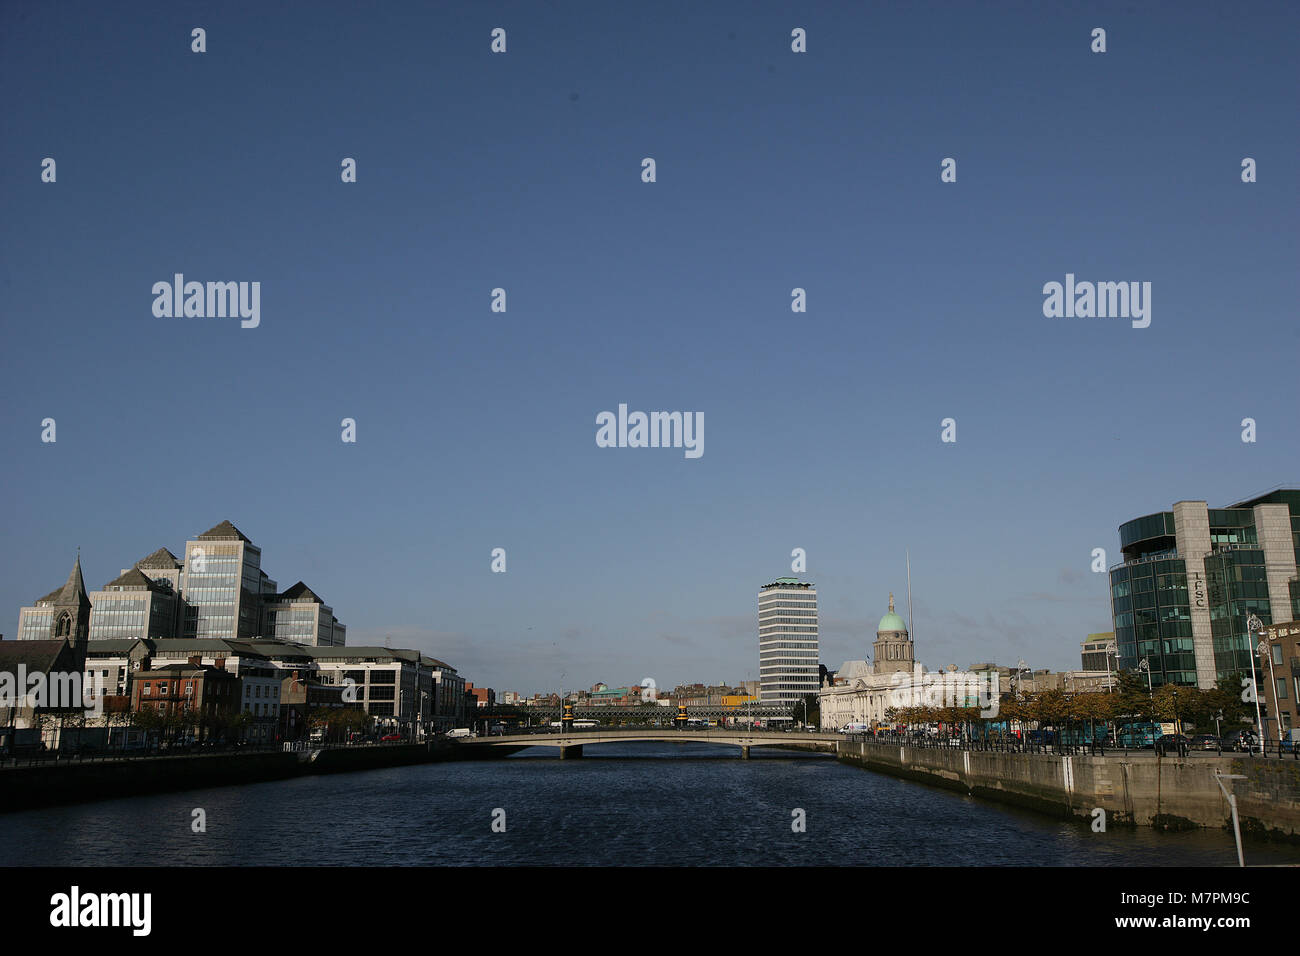 Dublin City, Ireland, 1 Oct, 2008. The Irish government has acted to shore up its financial system by guaranteeing - Stock Image